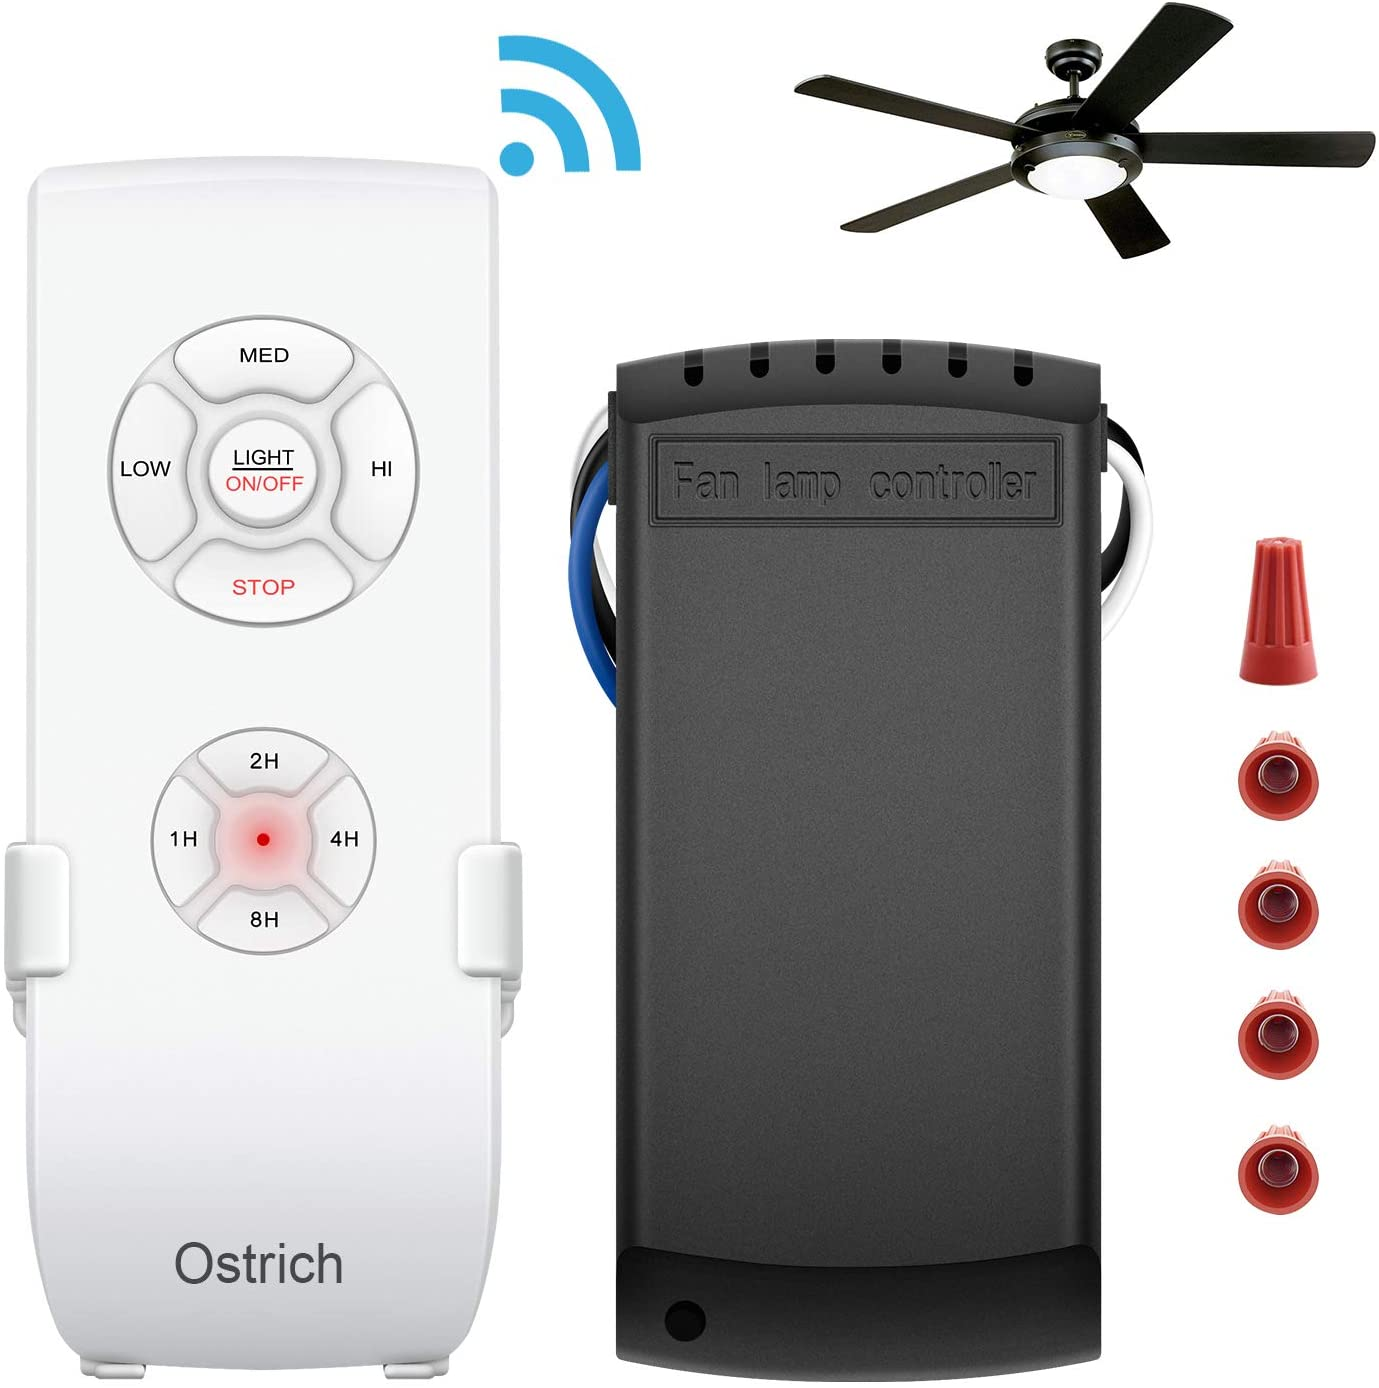 Ostrich Ceiling Fan Remote Control Kit